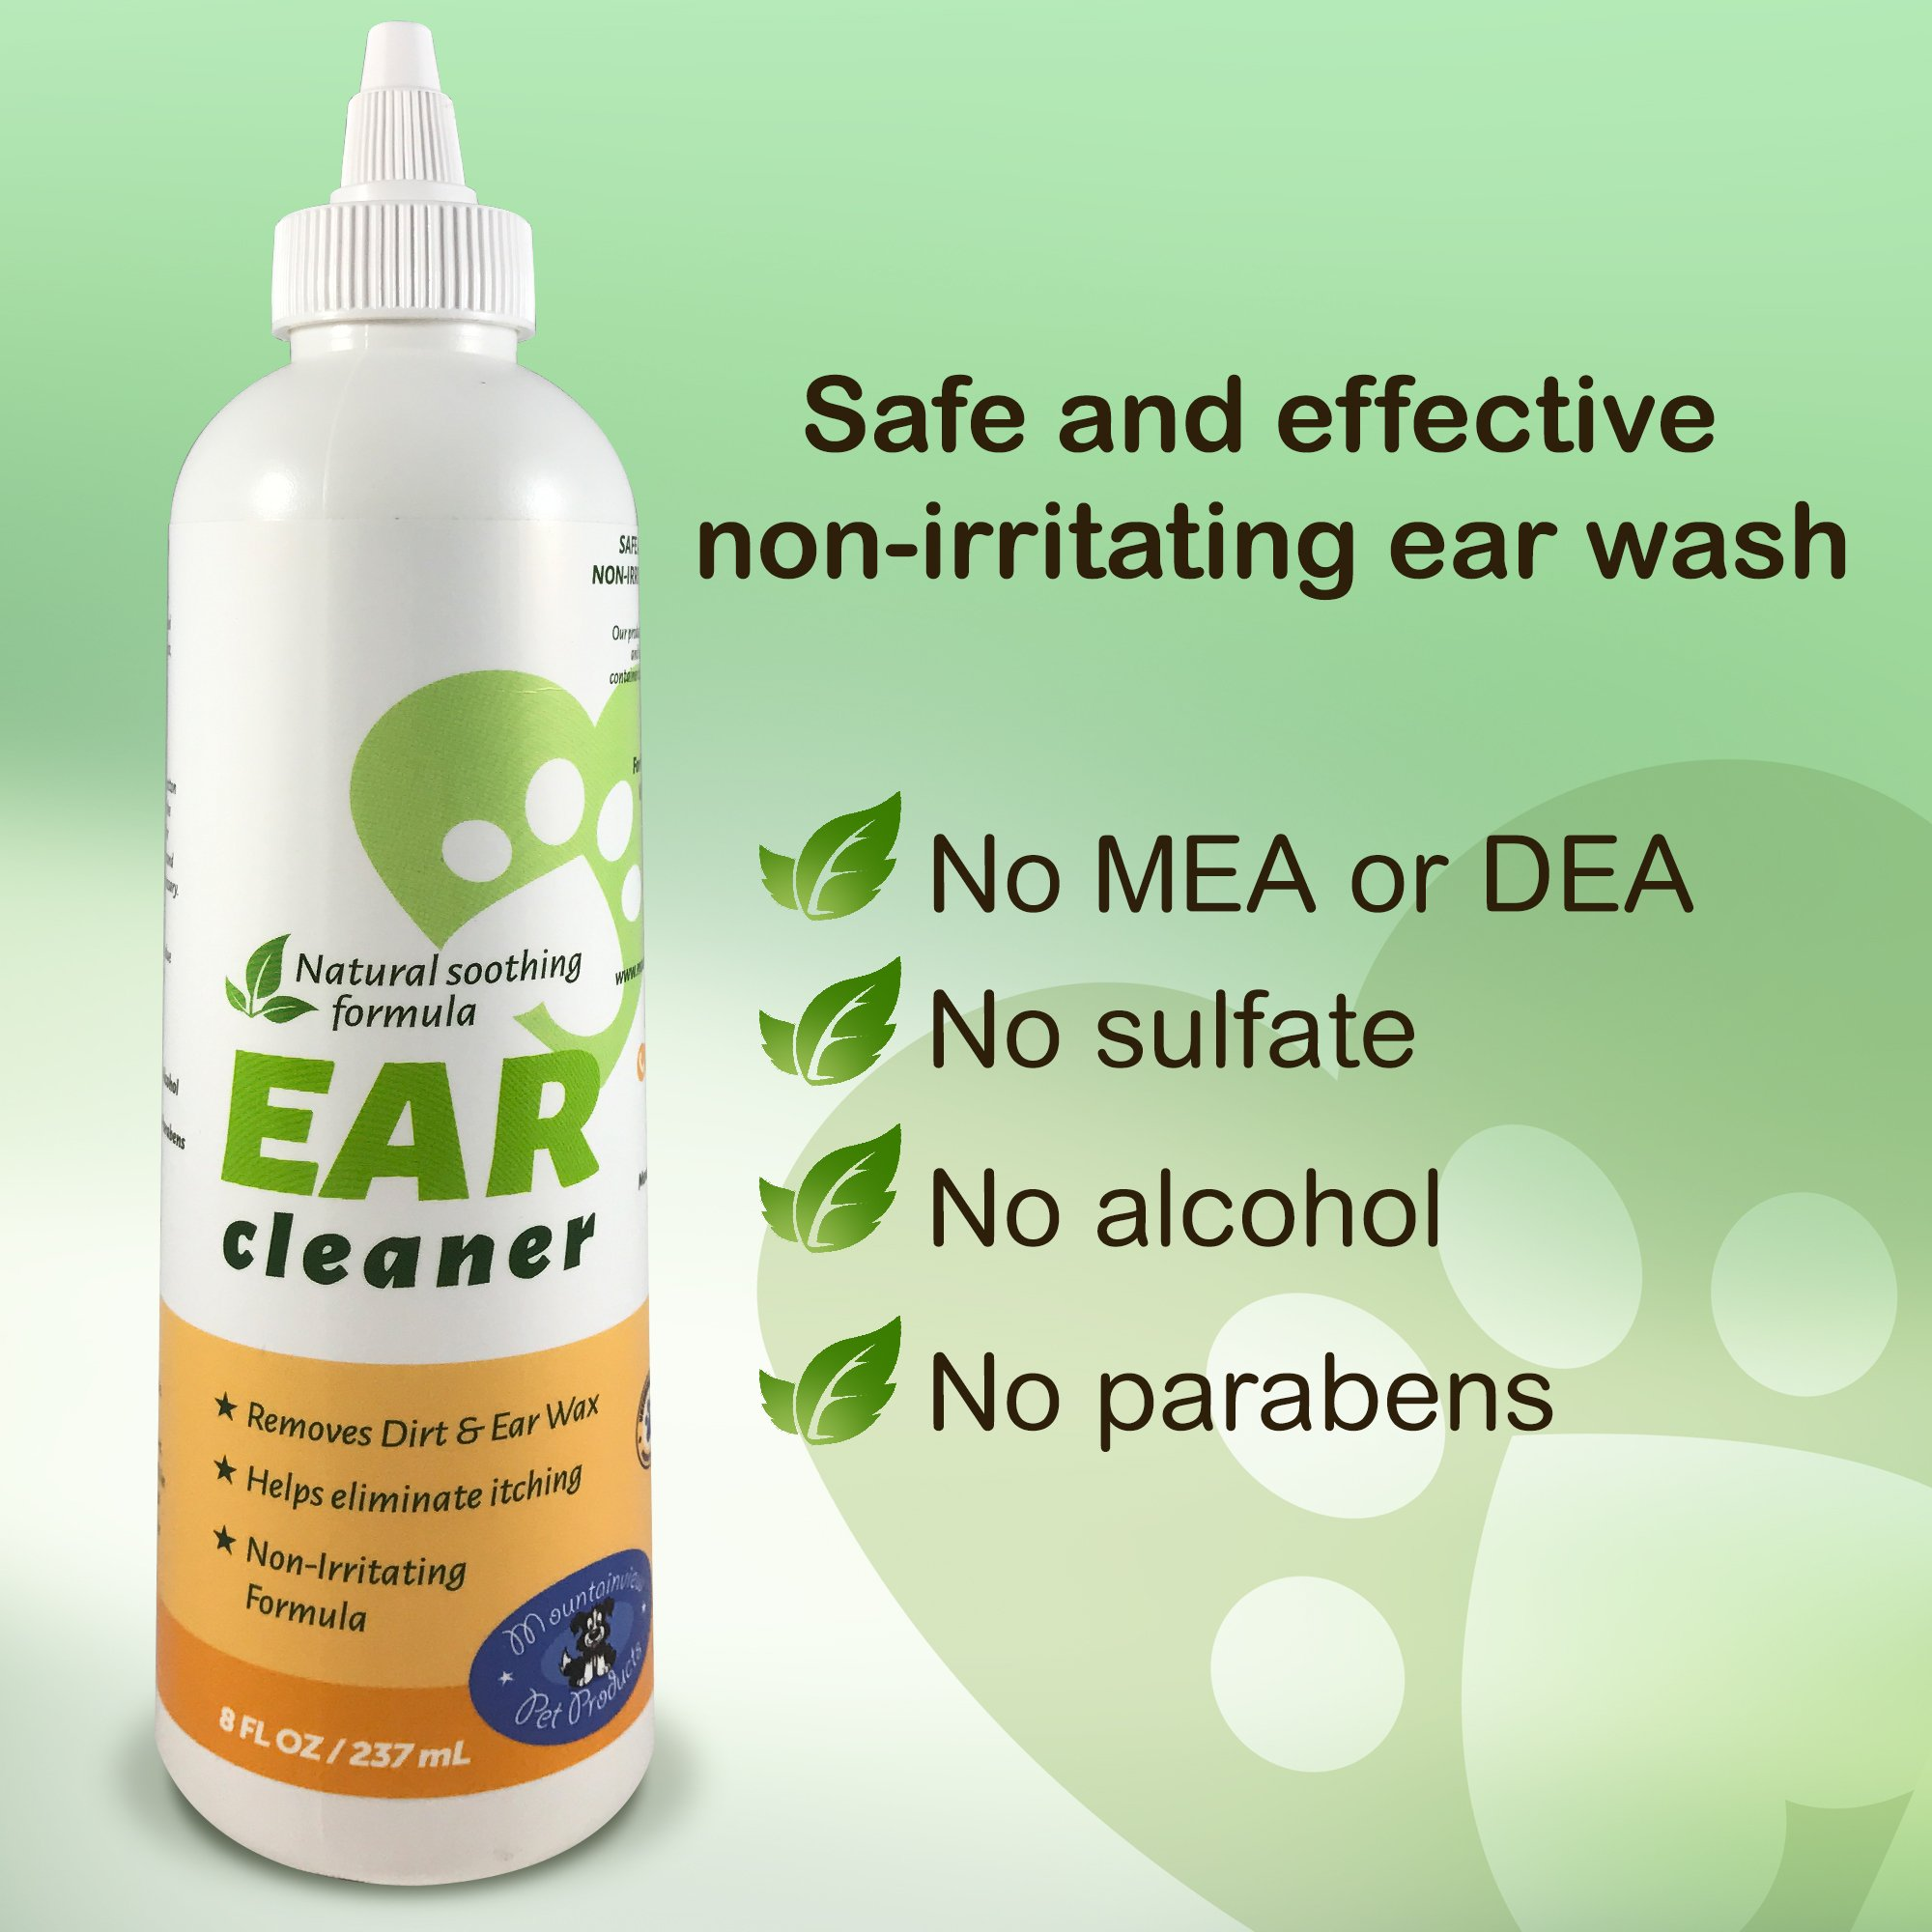 Mountainview Pet Products All Natural Ear Cleaner for Dogs or Cats with Easy Application Nozzle, Gently Removes Wax, Dirt and Odors by Mountainview Pet Products (Image #1)